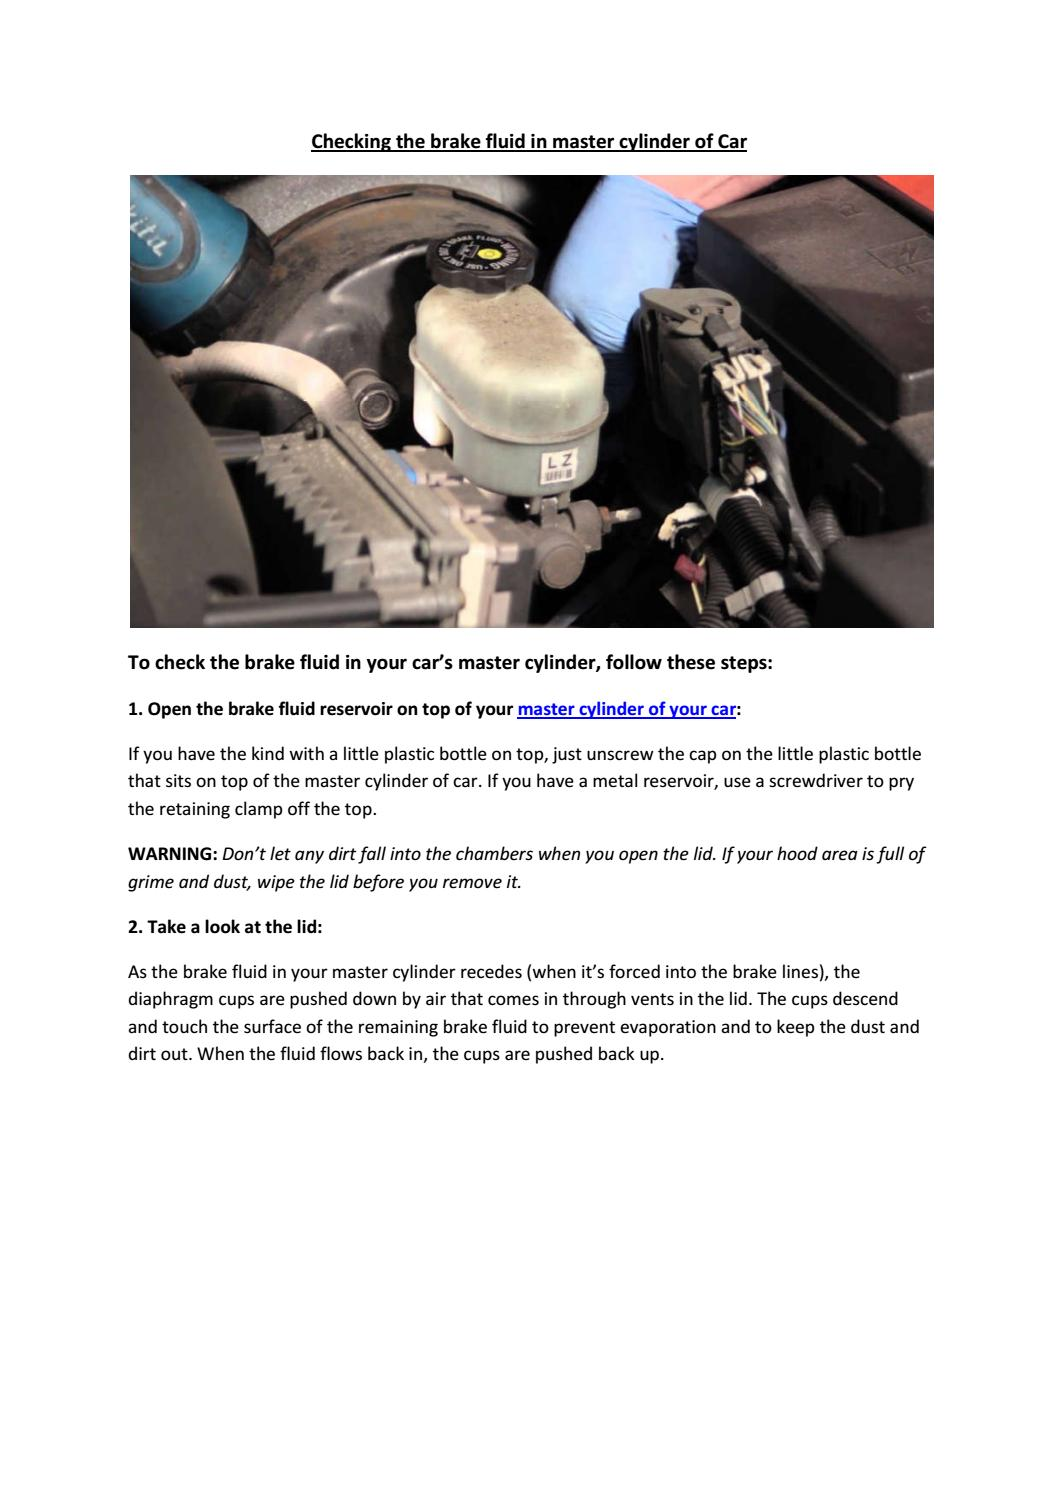 Partsavatar, CA - How do i check the brake system master cylinder of my car  by Partsavatar tr - issuu